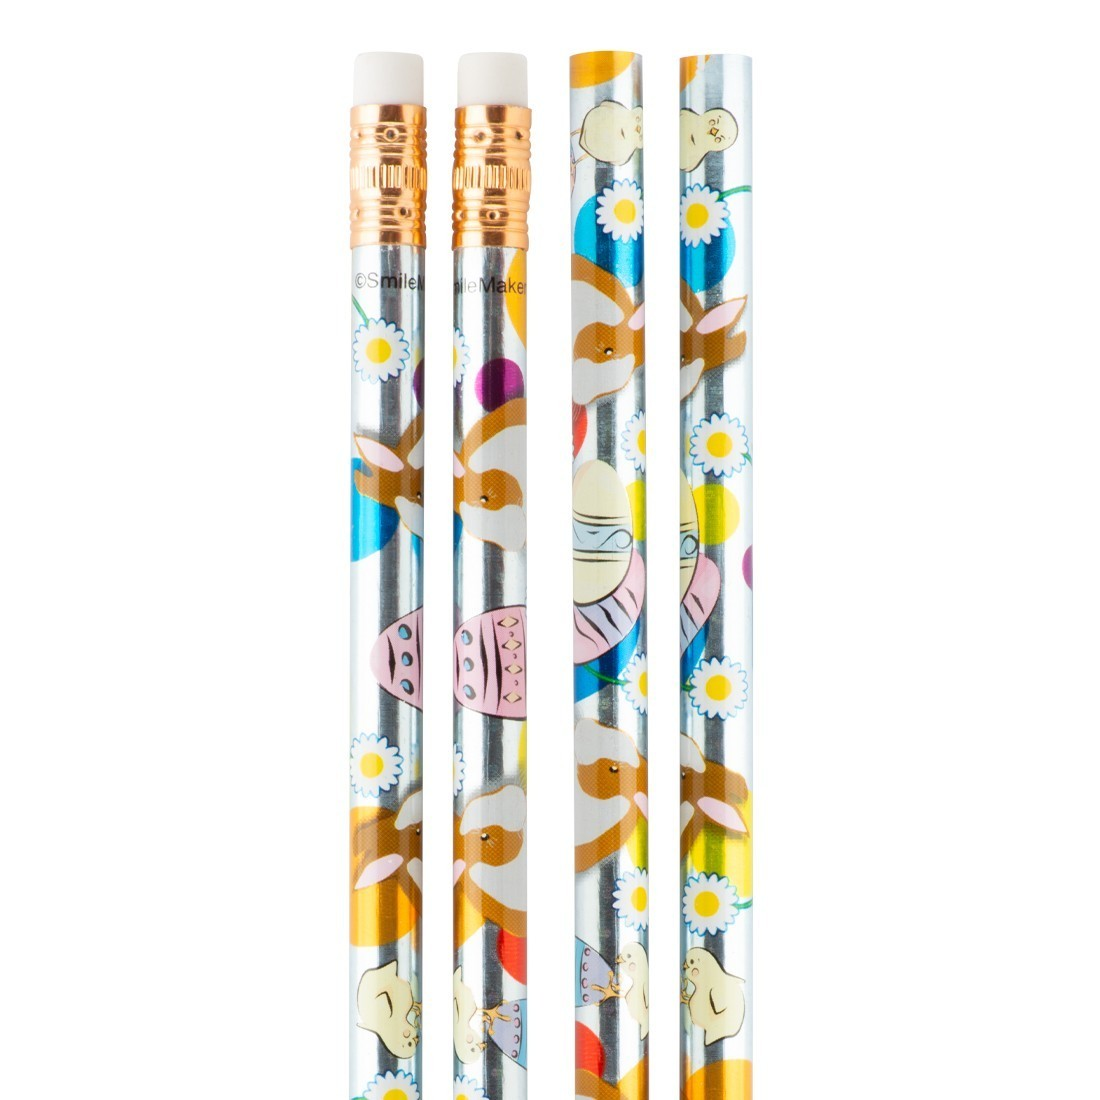 Glitter Bunnies Pencils   [image]